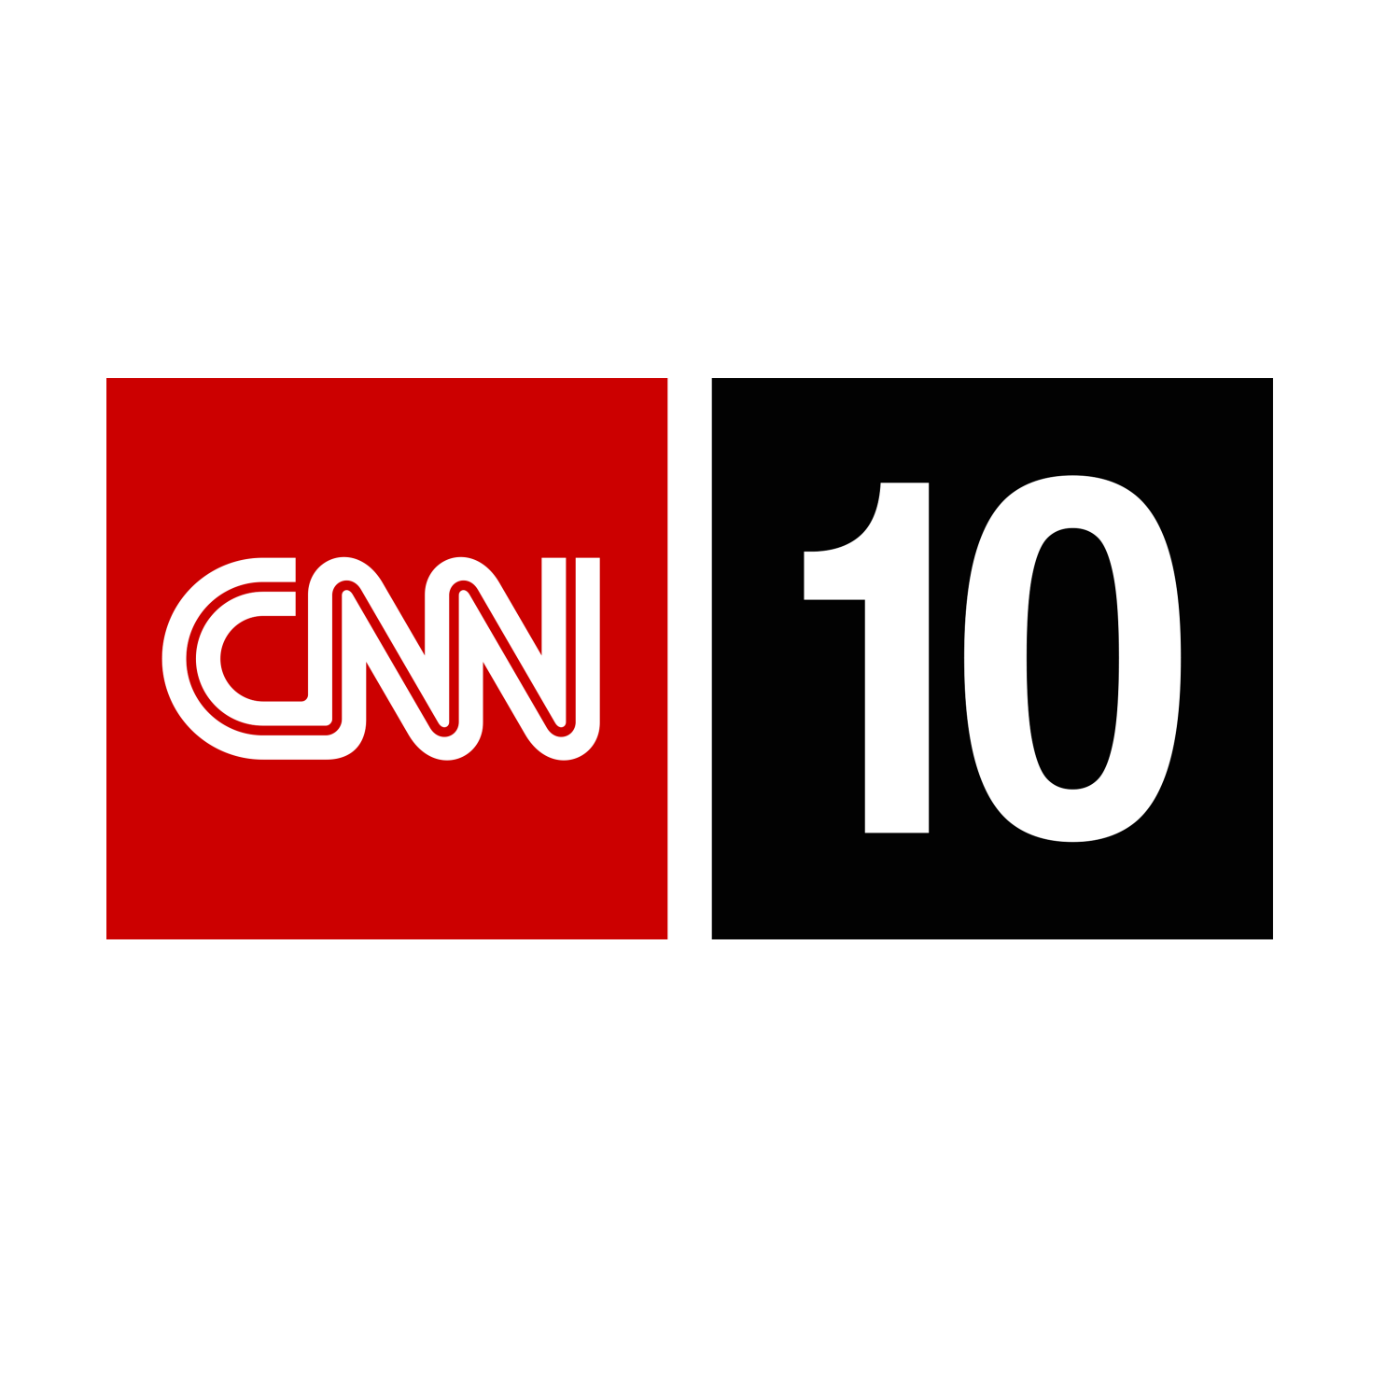 CNN Student News - March 6, 2013